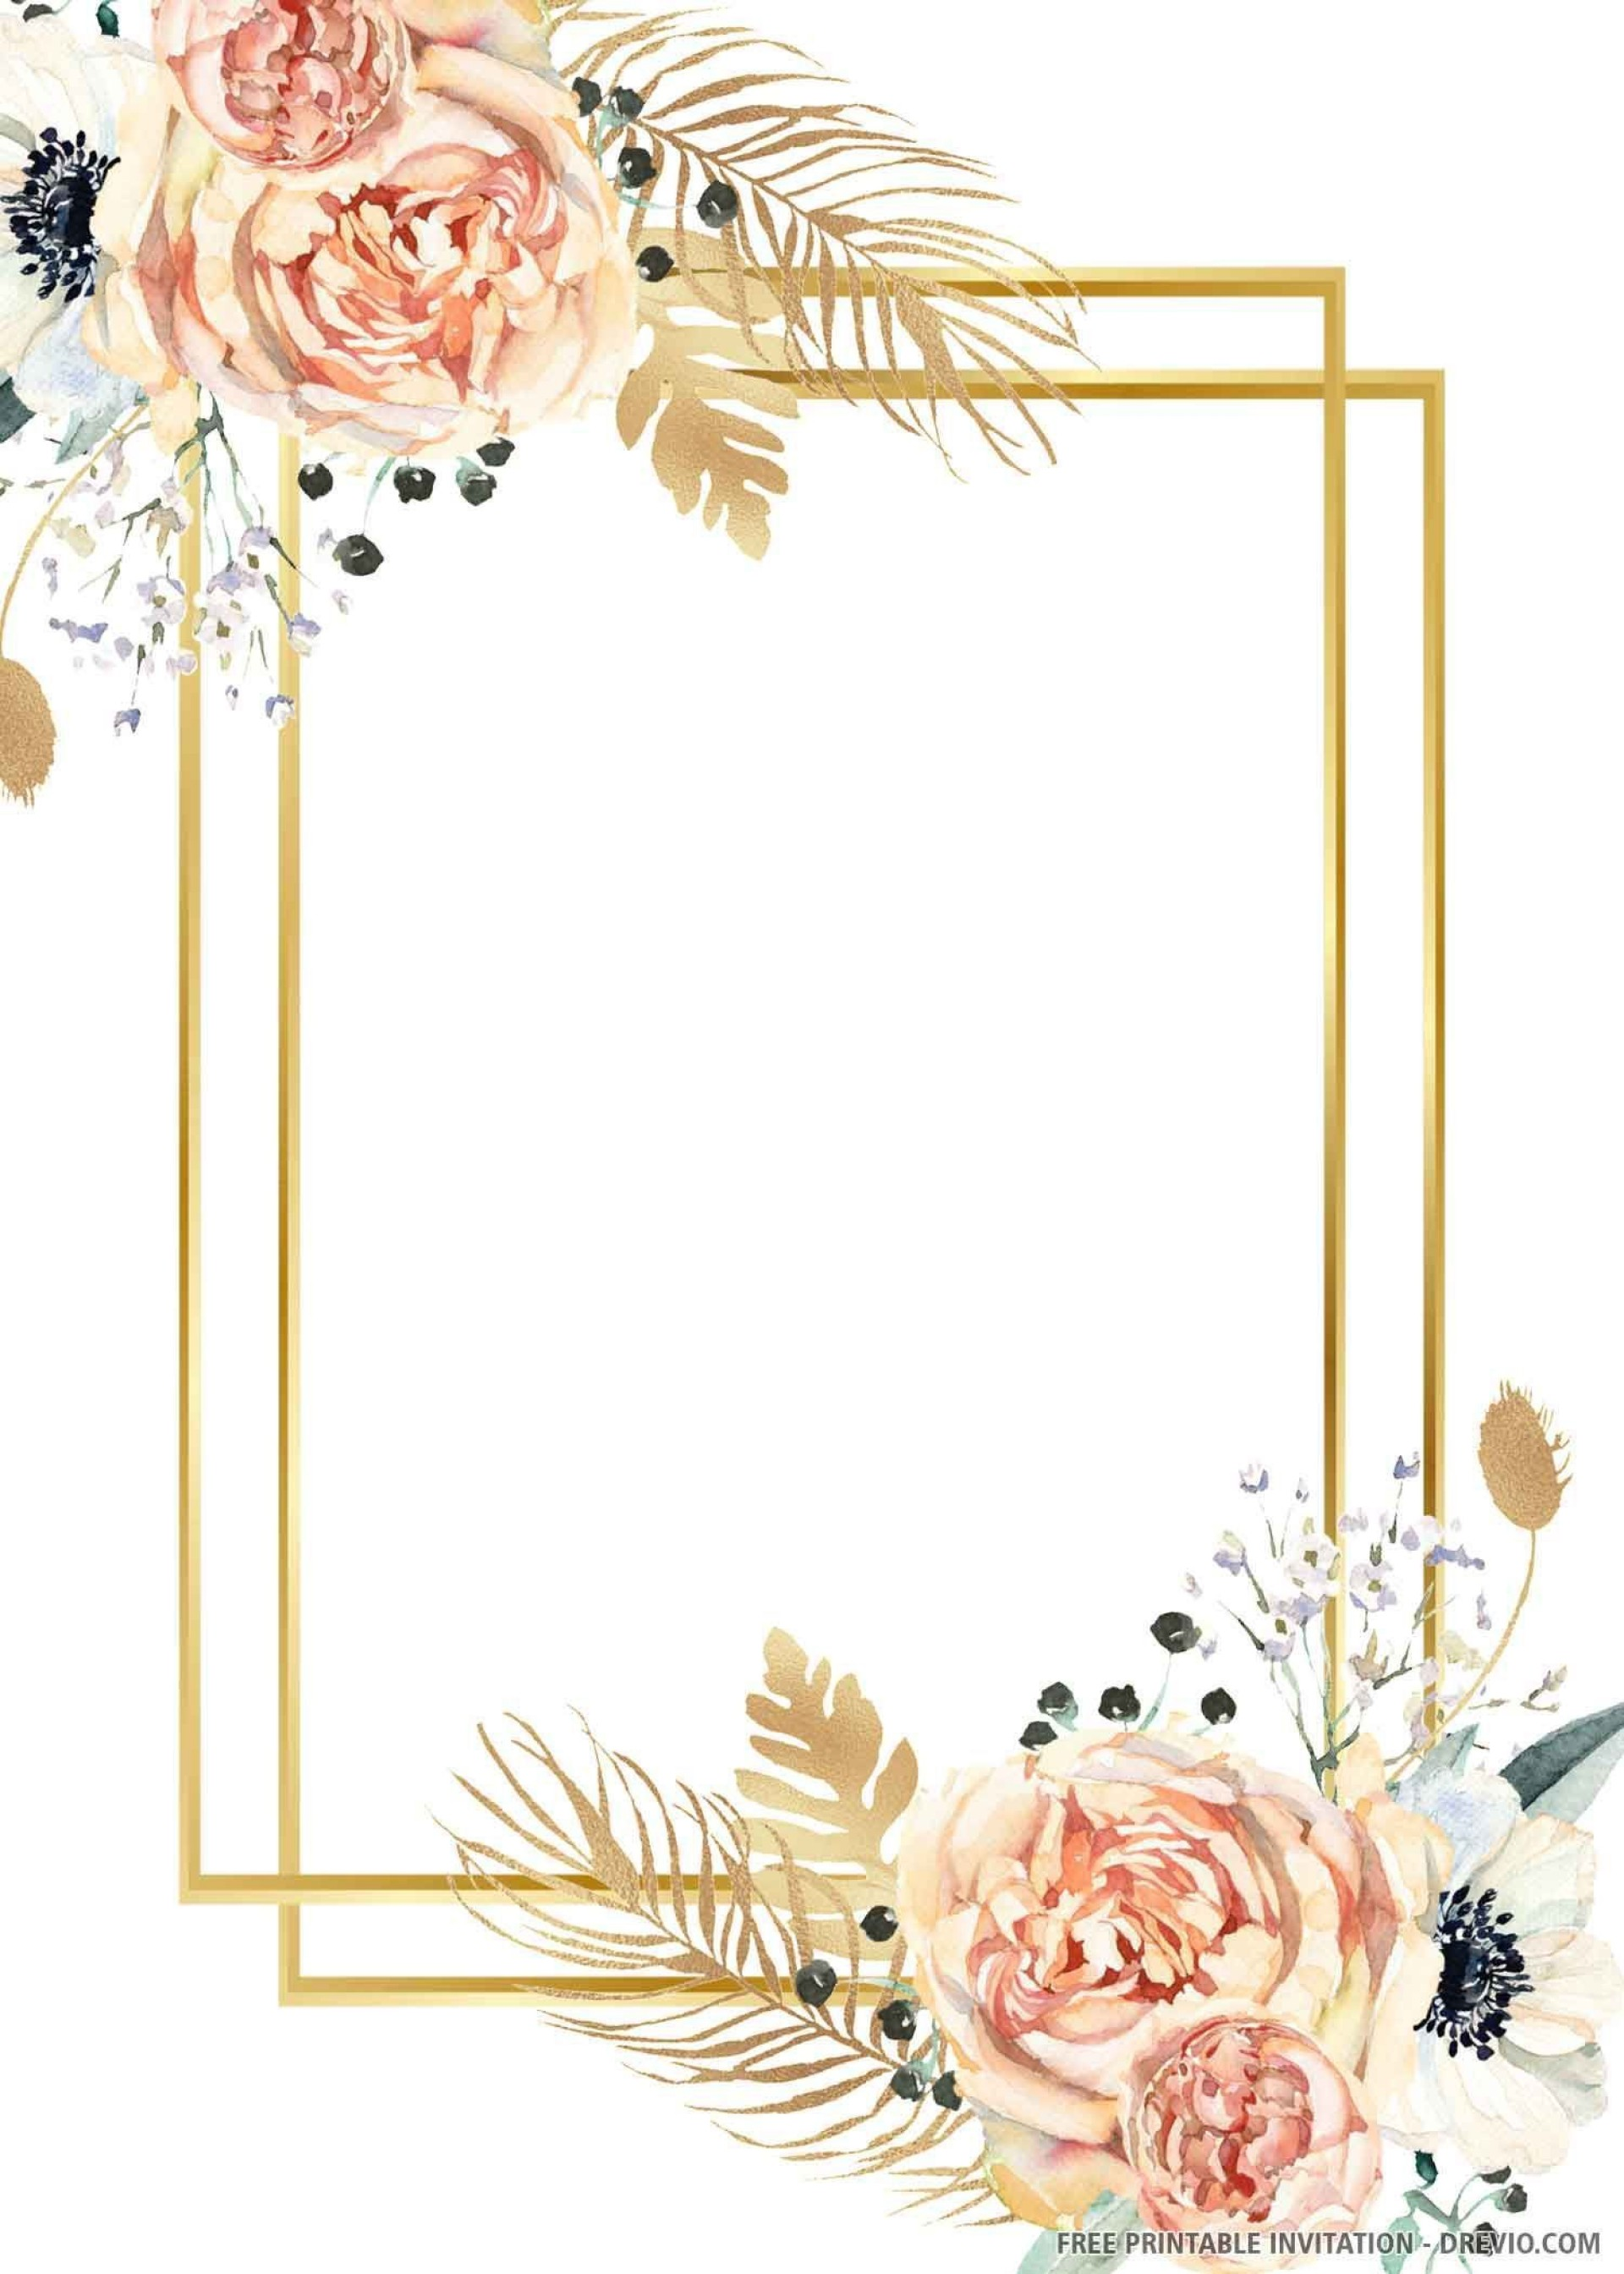 009 Stunning Free Invite Design Printable Example  Wedding Place Card Template Birthday To Print1920